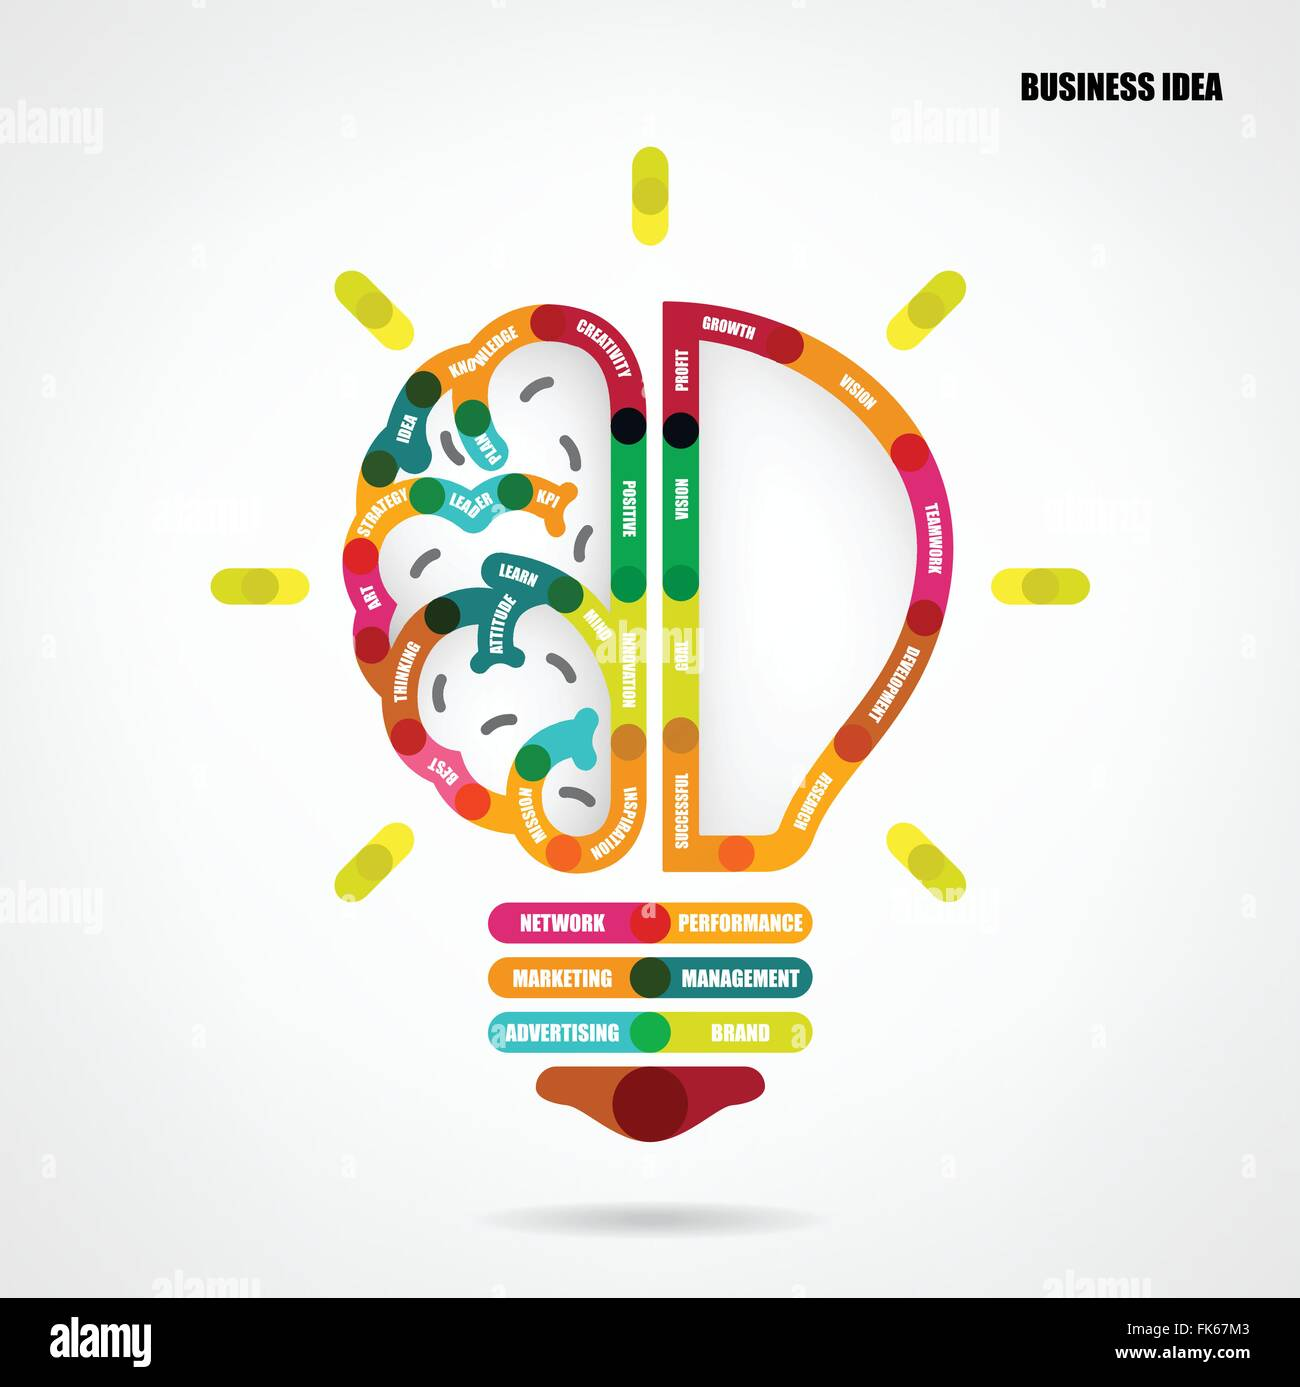 creative light bulb concept with business idea background design